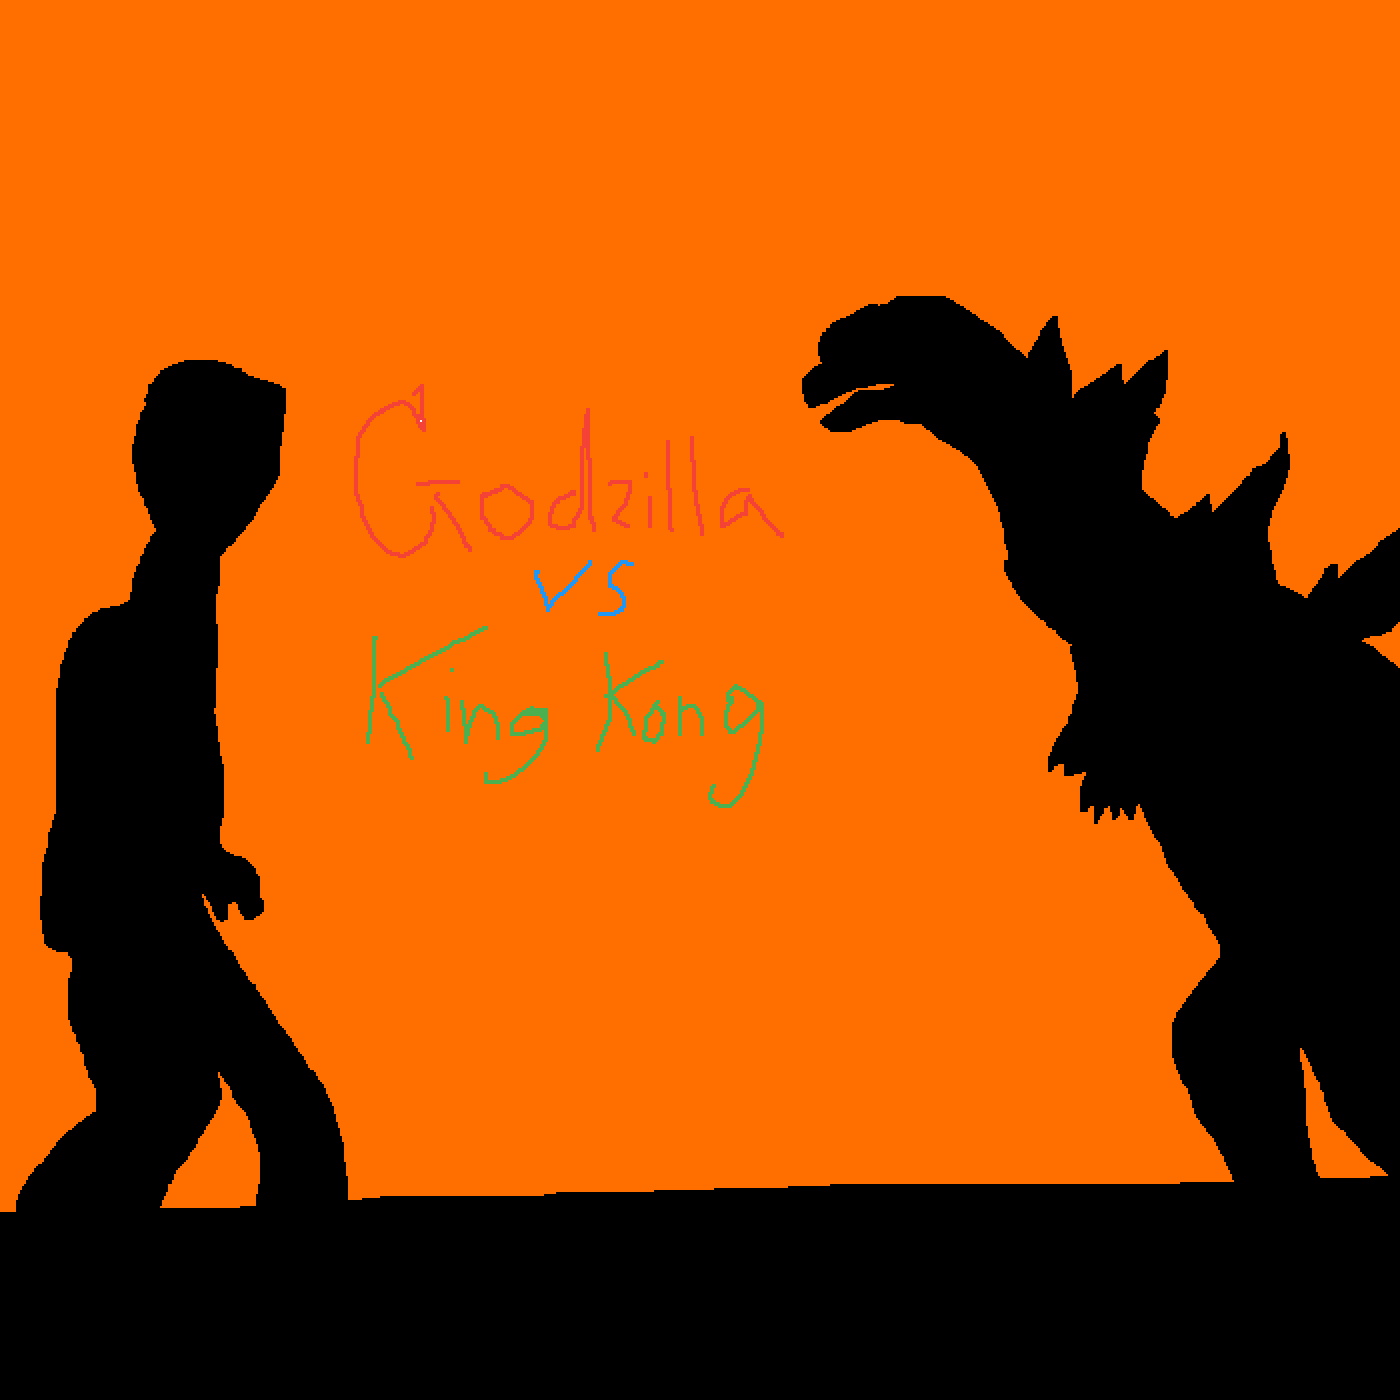 Godzilla vs. King Kong - Who would win?  by XenoZombie725